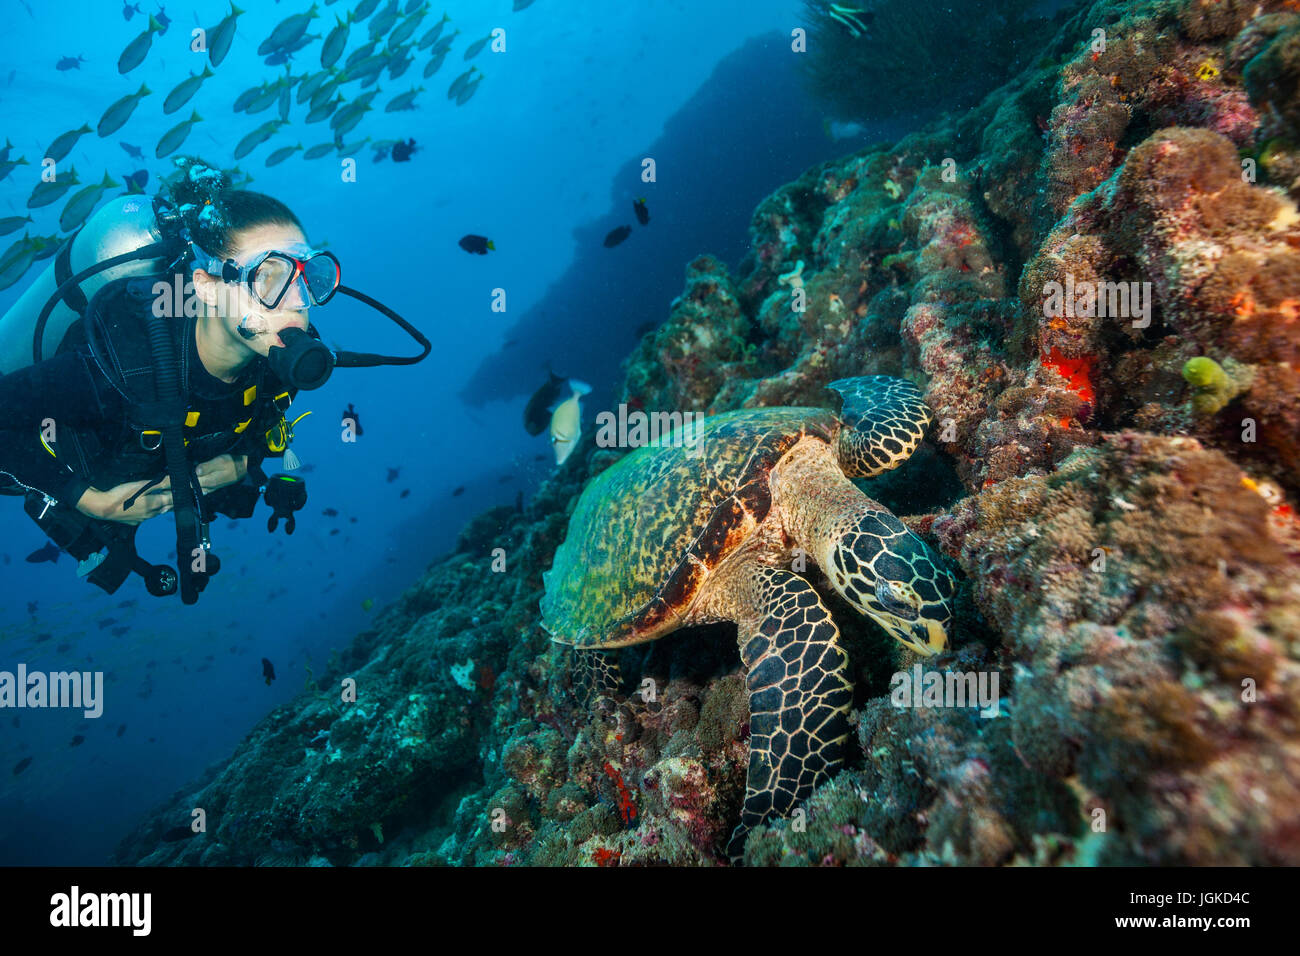 Woman scuba diver exploring sea bottom. Underwater life with beautiful corals and hawksbill turtle - Stock Image